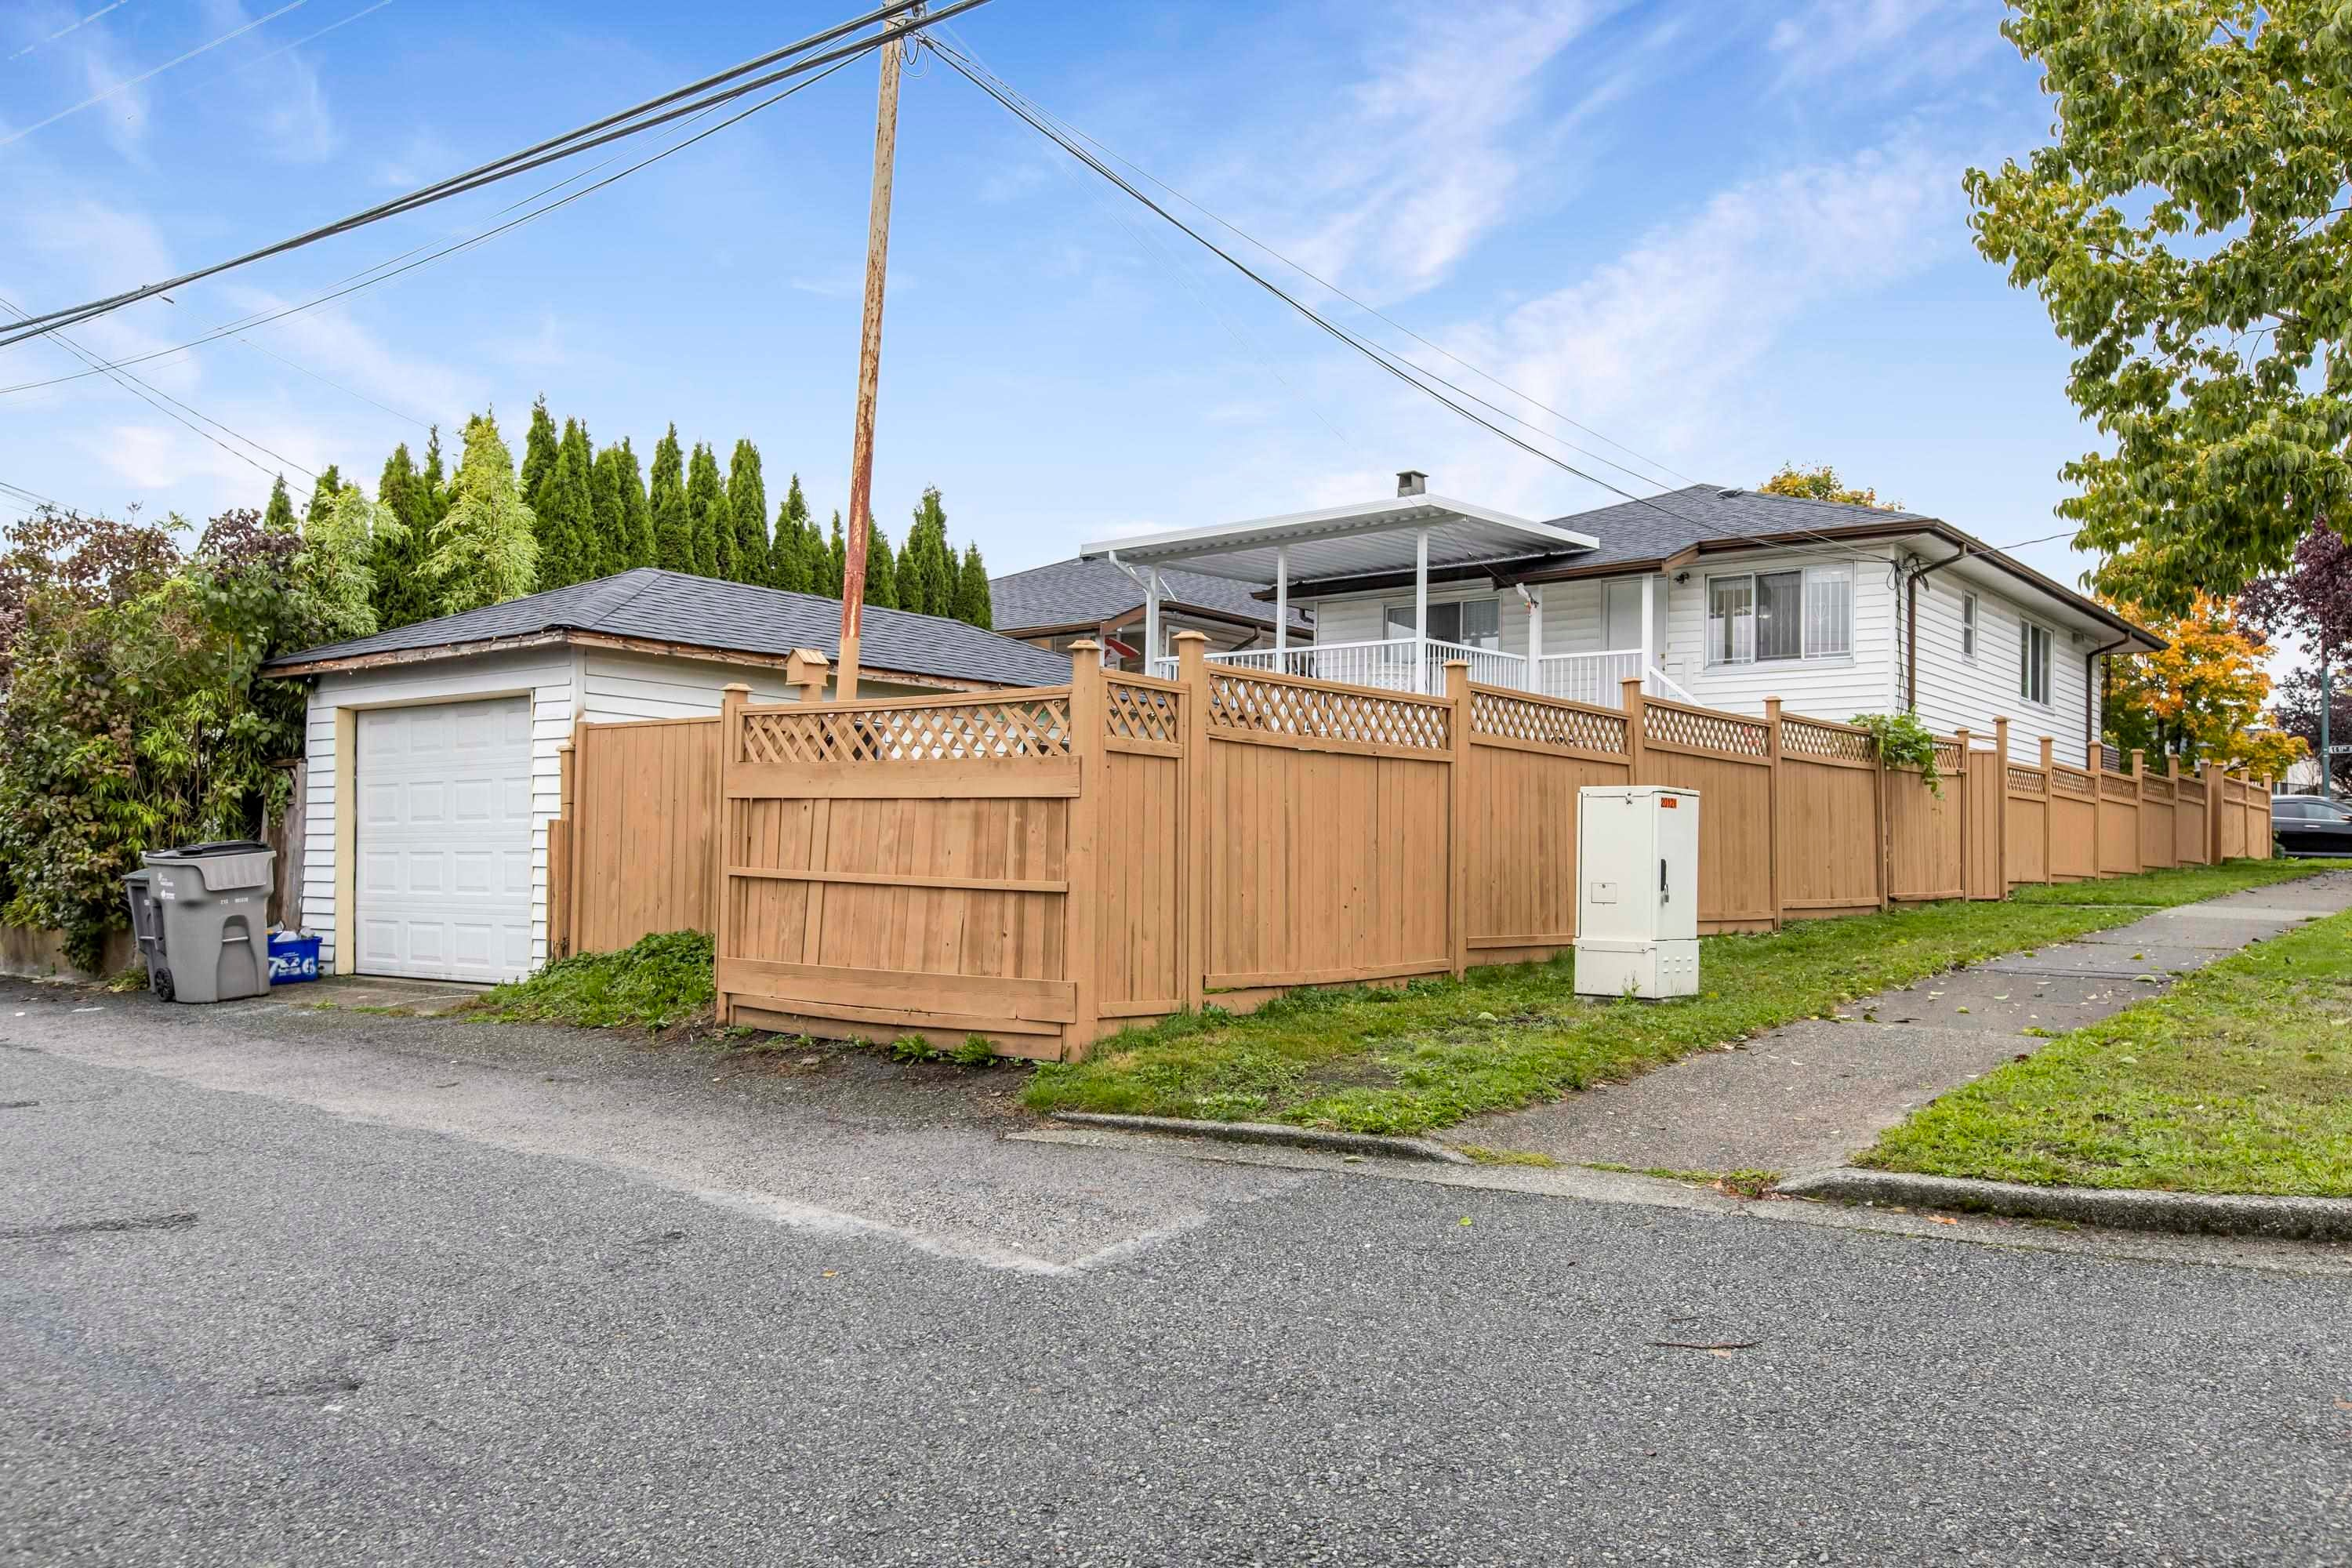 1352 E 57TH AVENUE - South Vancouver House/Single Family for sale, 4 Bedrooms (R2625705) - #3